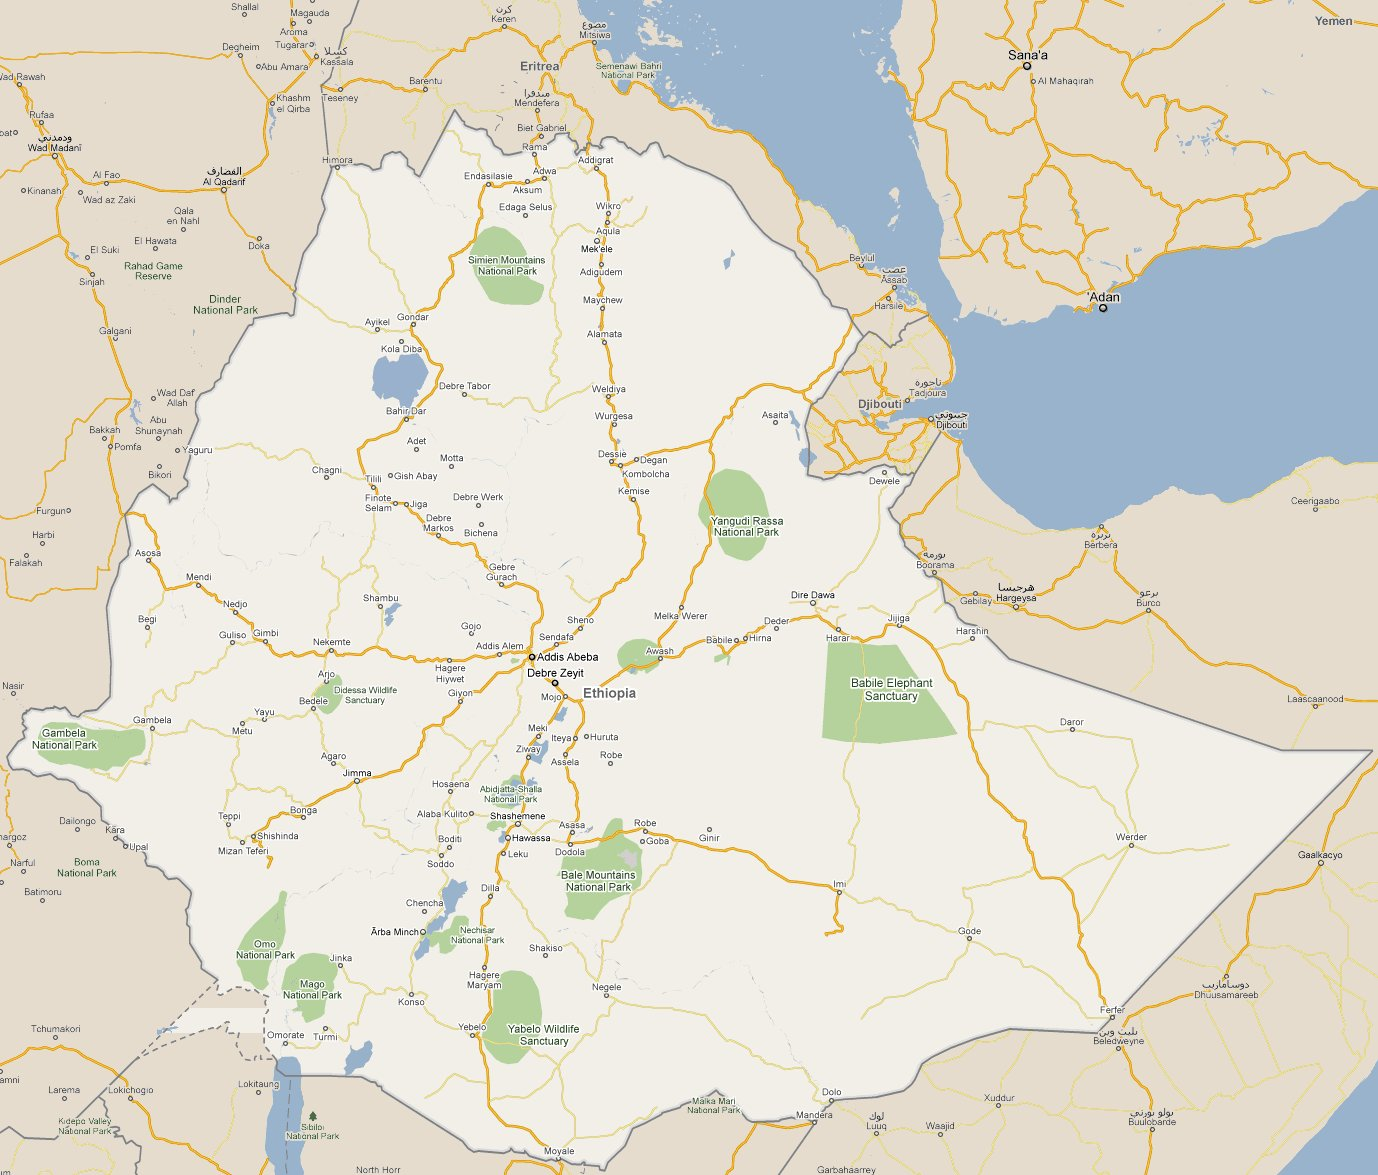 Footiemap ethiopia 2011 2012 map of top tier ethiopian footiemap ethiopia 2011 2012 map of top tier ethiopian football club stadiums gumiabroncs Choice Image